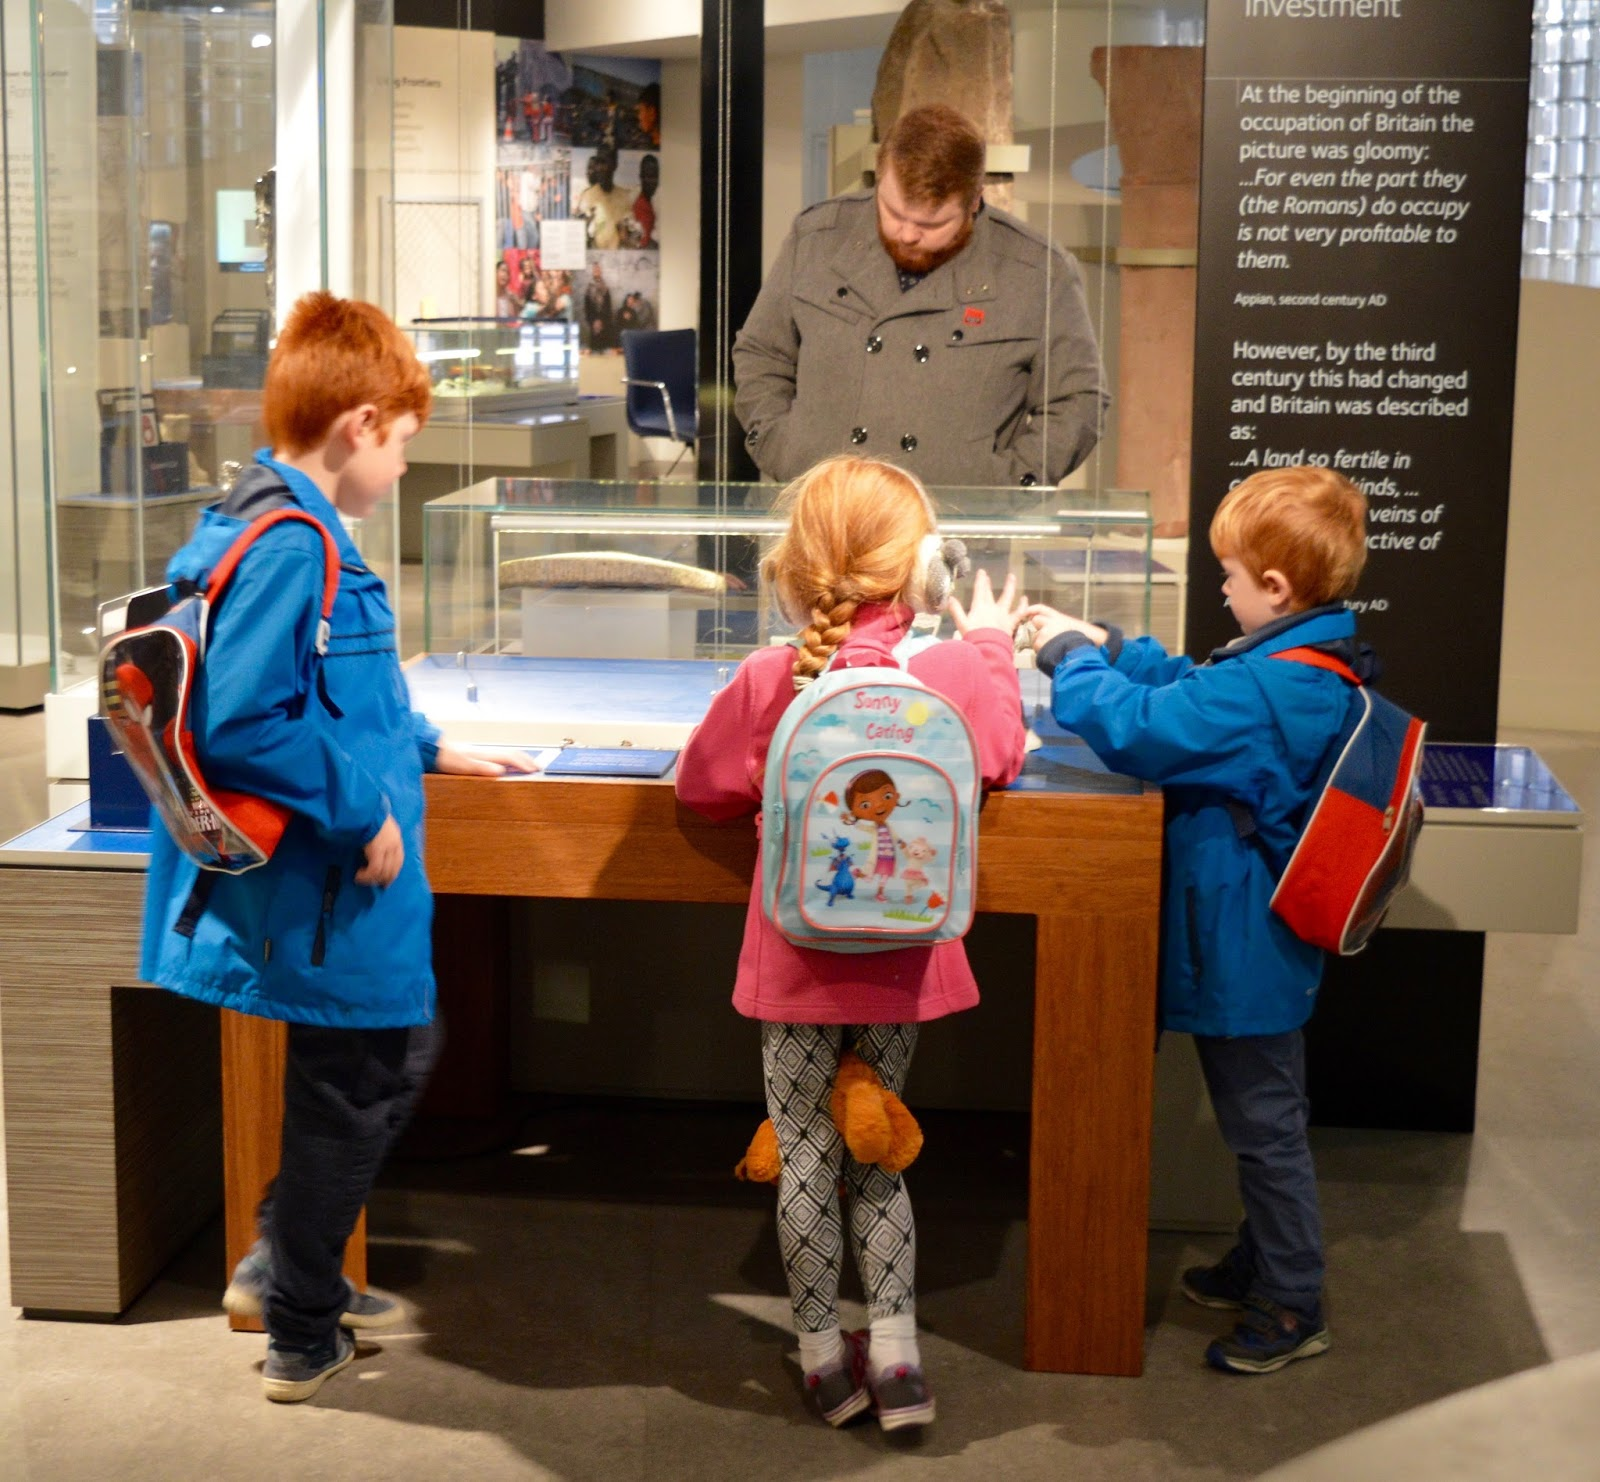 Great Days Out with Northern  | Our Day Trip to Carlisle by Train - Roman artefacts at Tullie museum